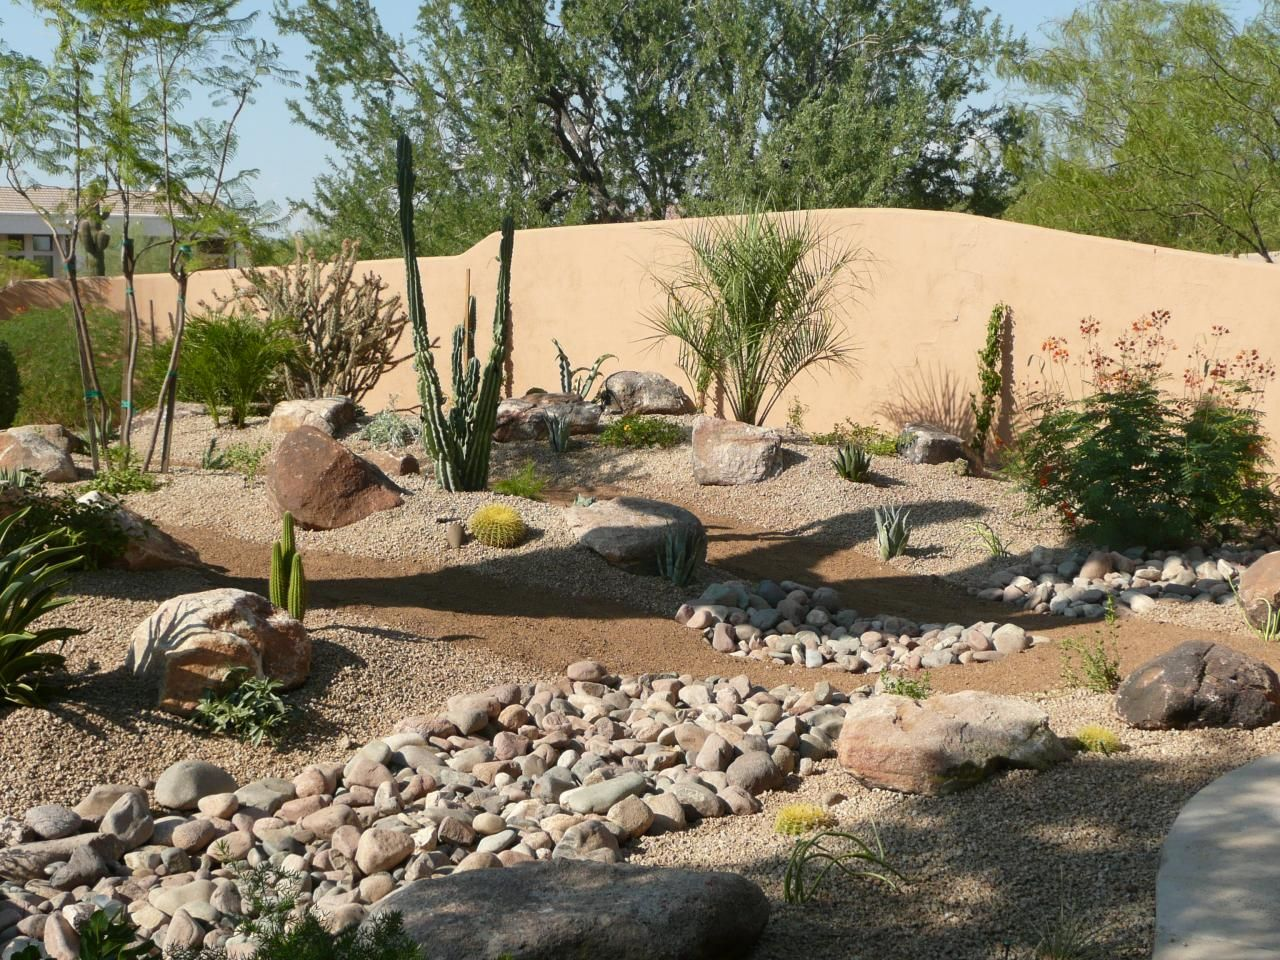 Desert Garden Ideas the Find This Pin And More On Did You Know Water Edition Desert Gardens